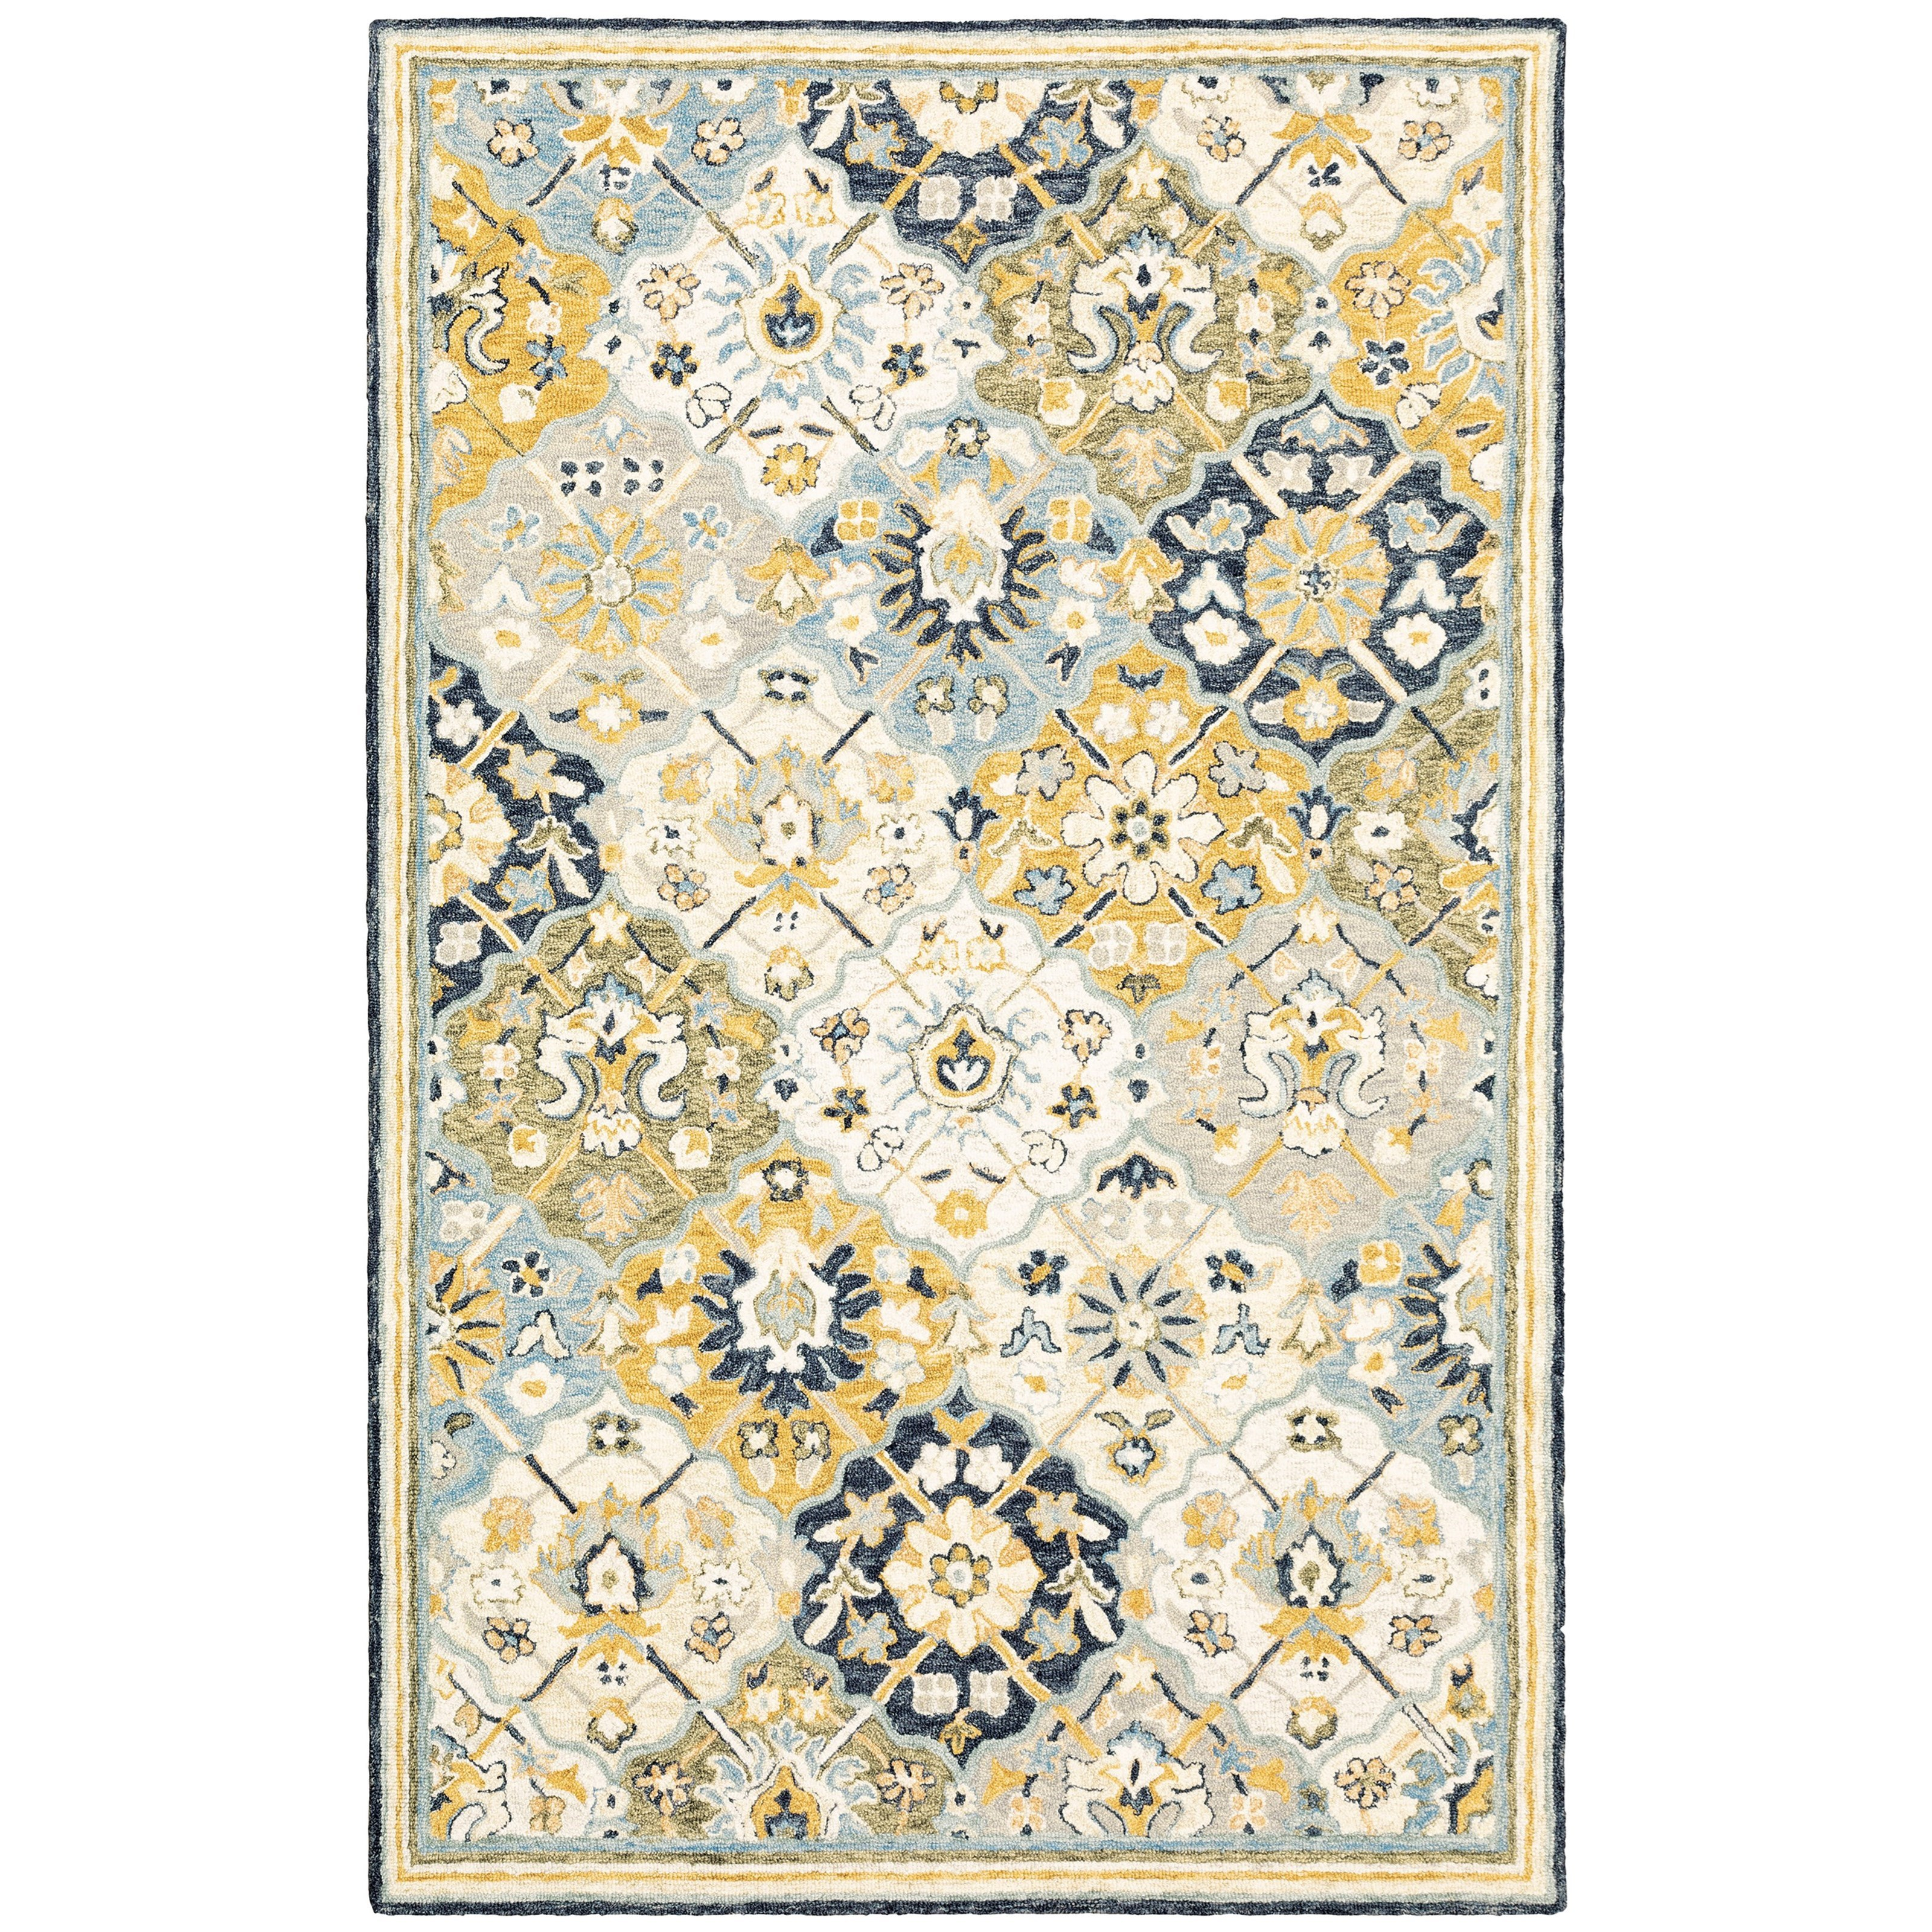 Alfresco 10' X 13' Rectangle Rug by Oriental Weavers at Godby Home Furnishings